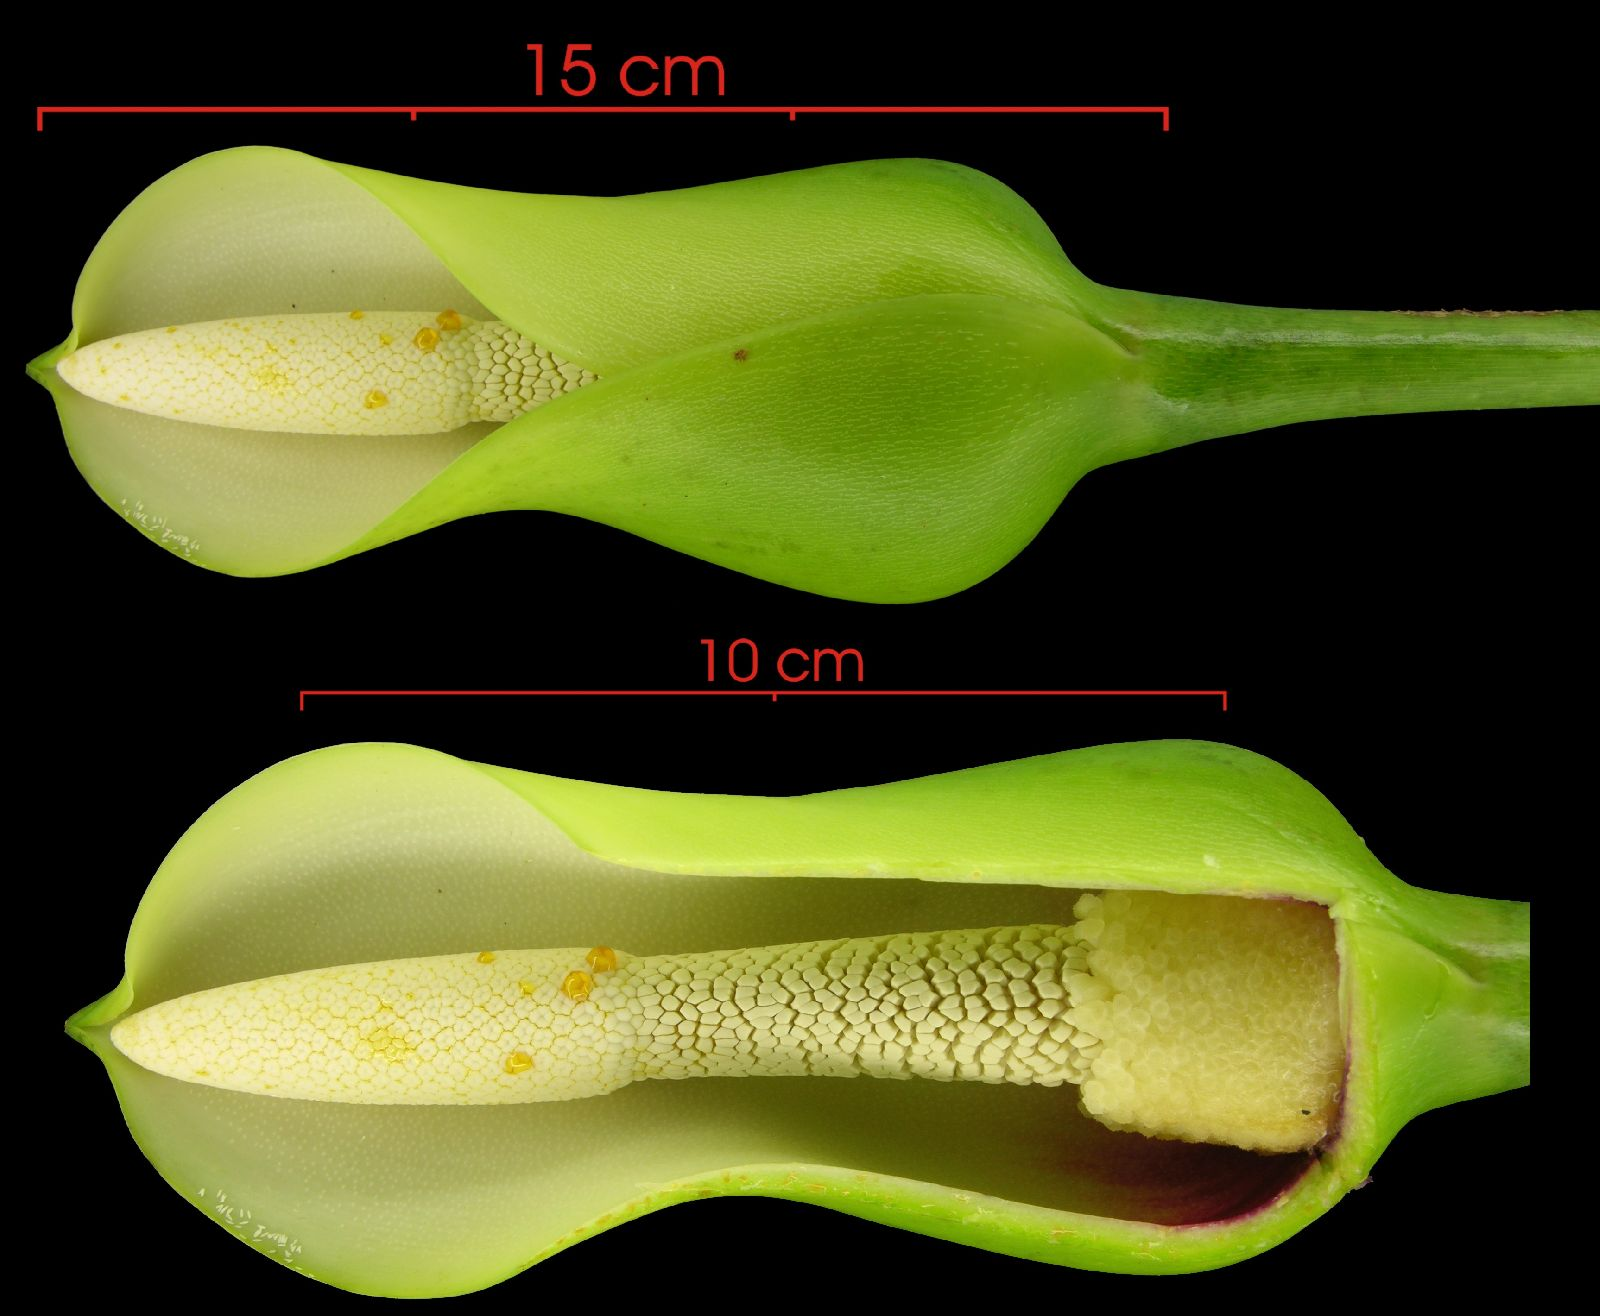 Philodendron jacquinii image